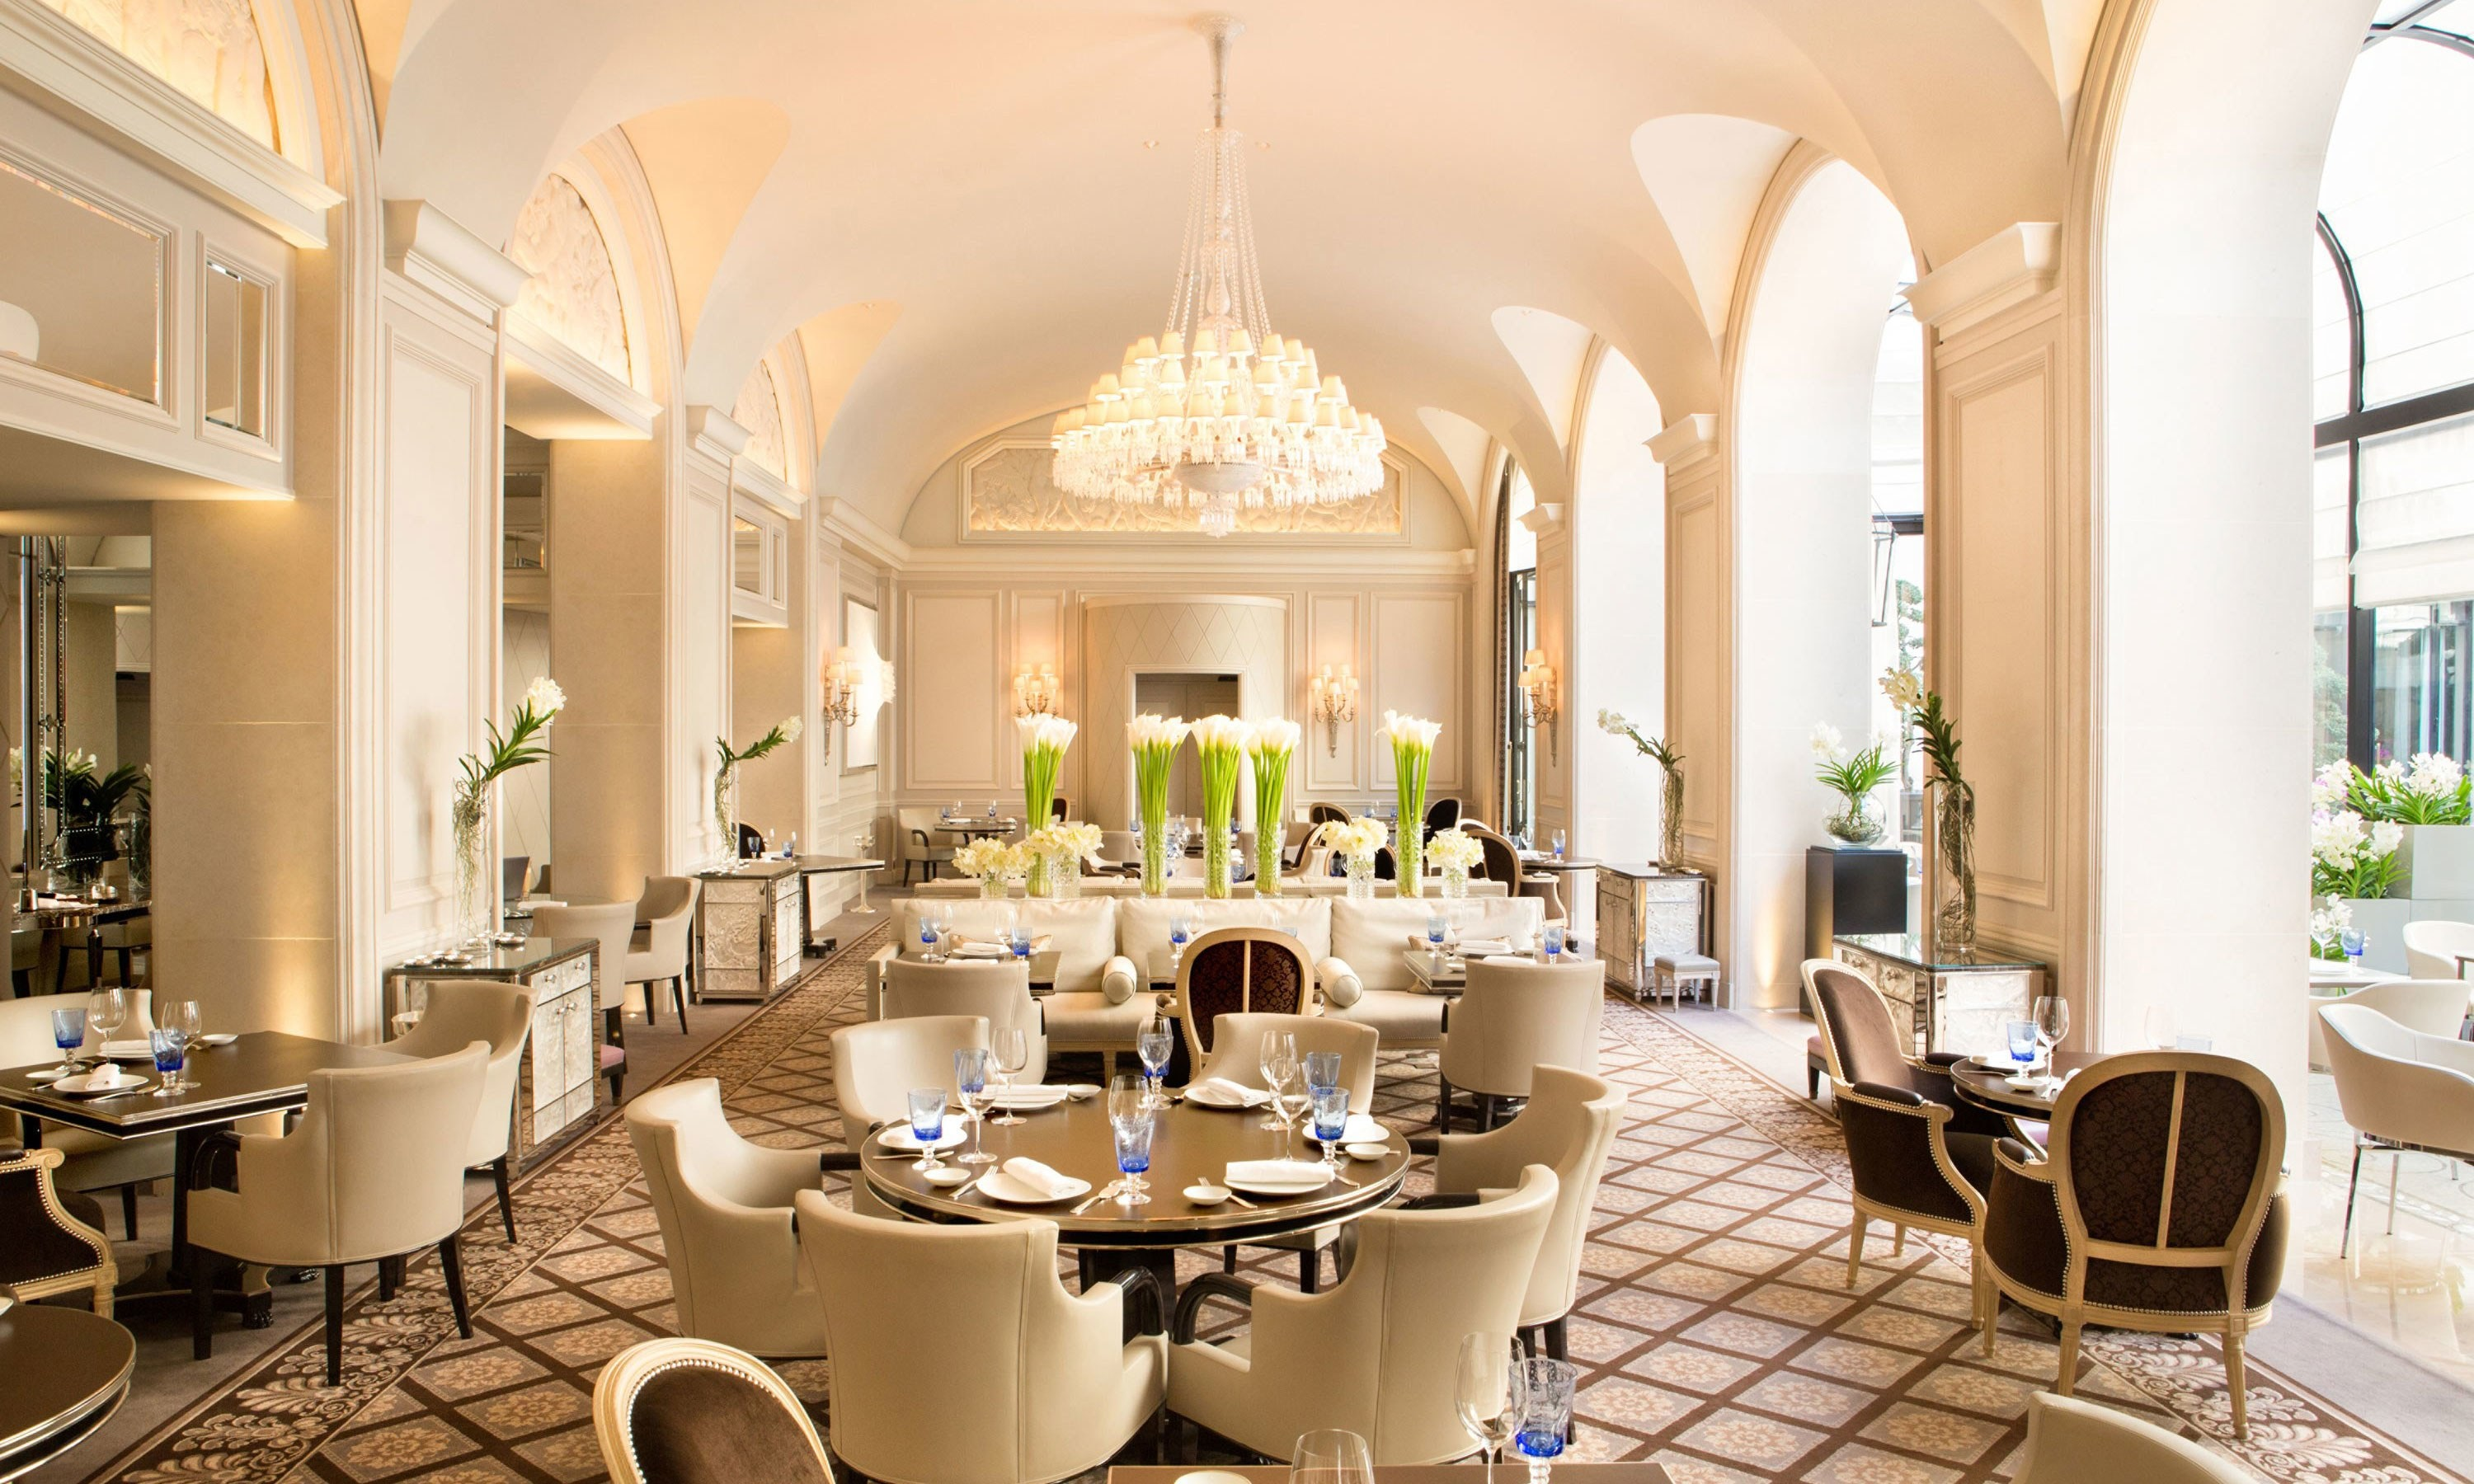 Pierre-Yves Rochon: A Leader in Hospitality Design pierre-yves rochon Pierre-Yves Rochon: A Leader in Hospitality Design four seasons hotel george v paris le george restaurant city directory